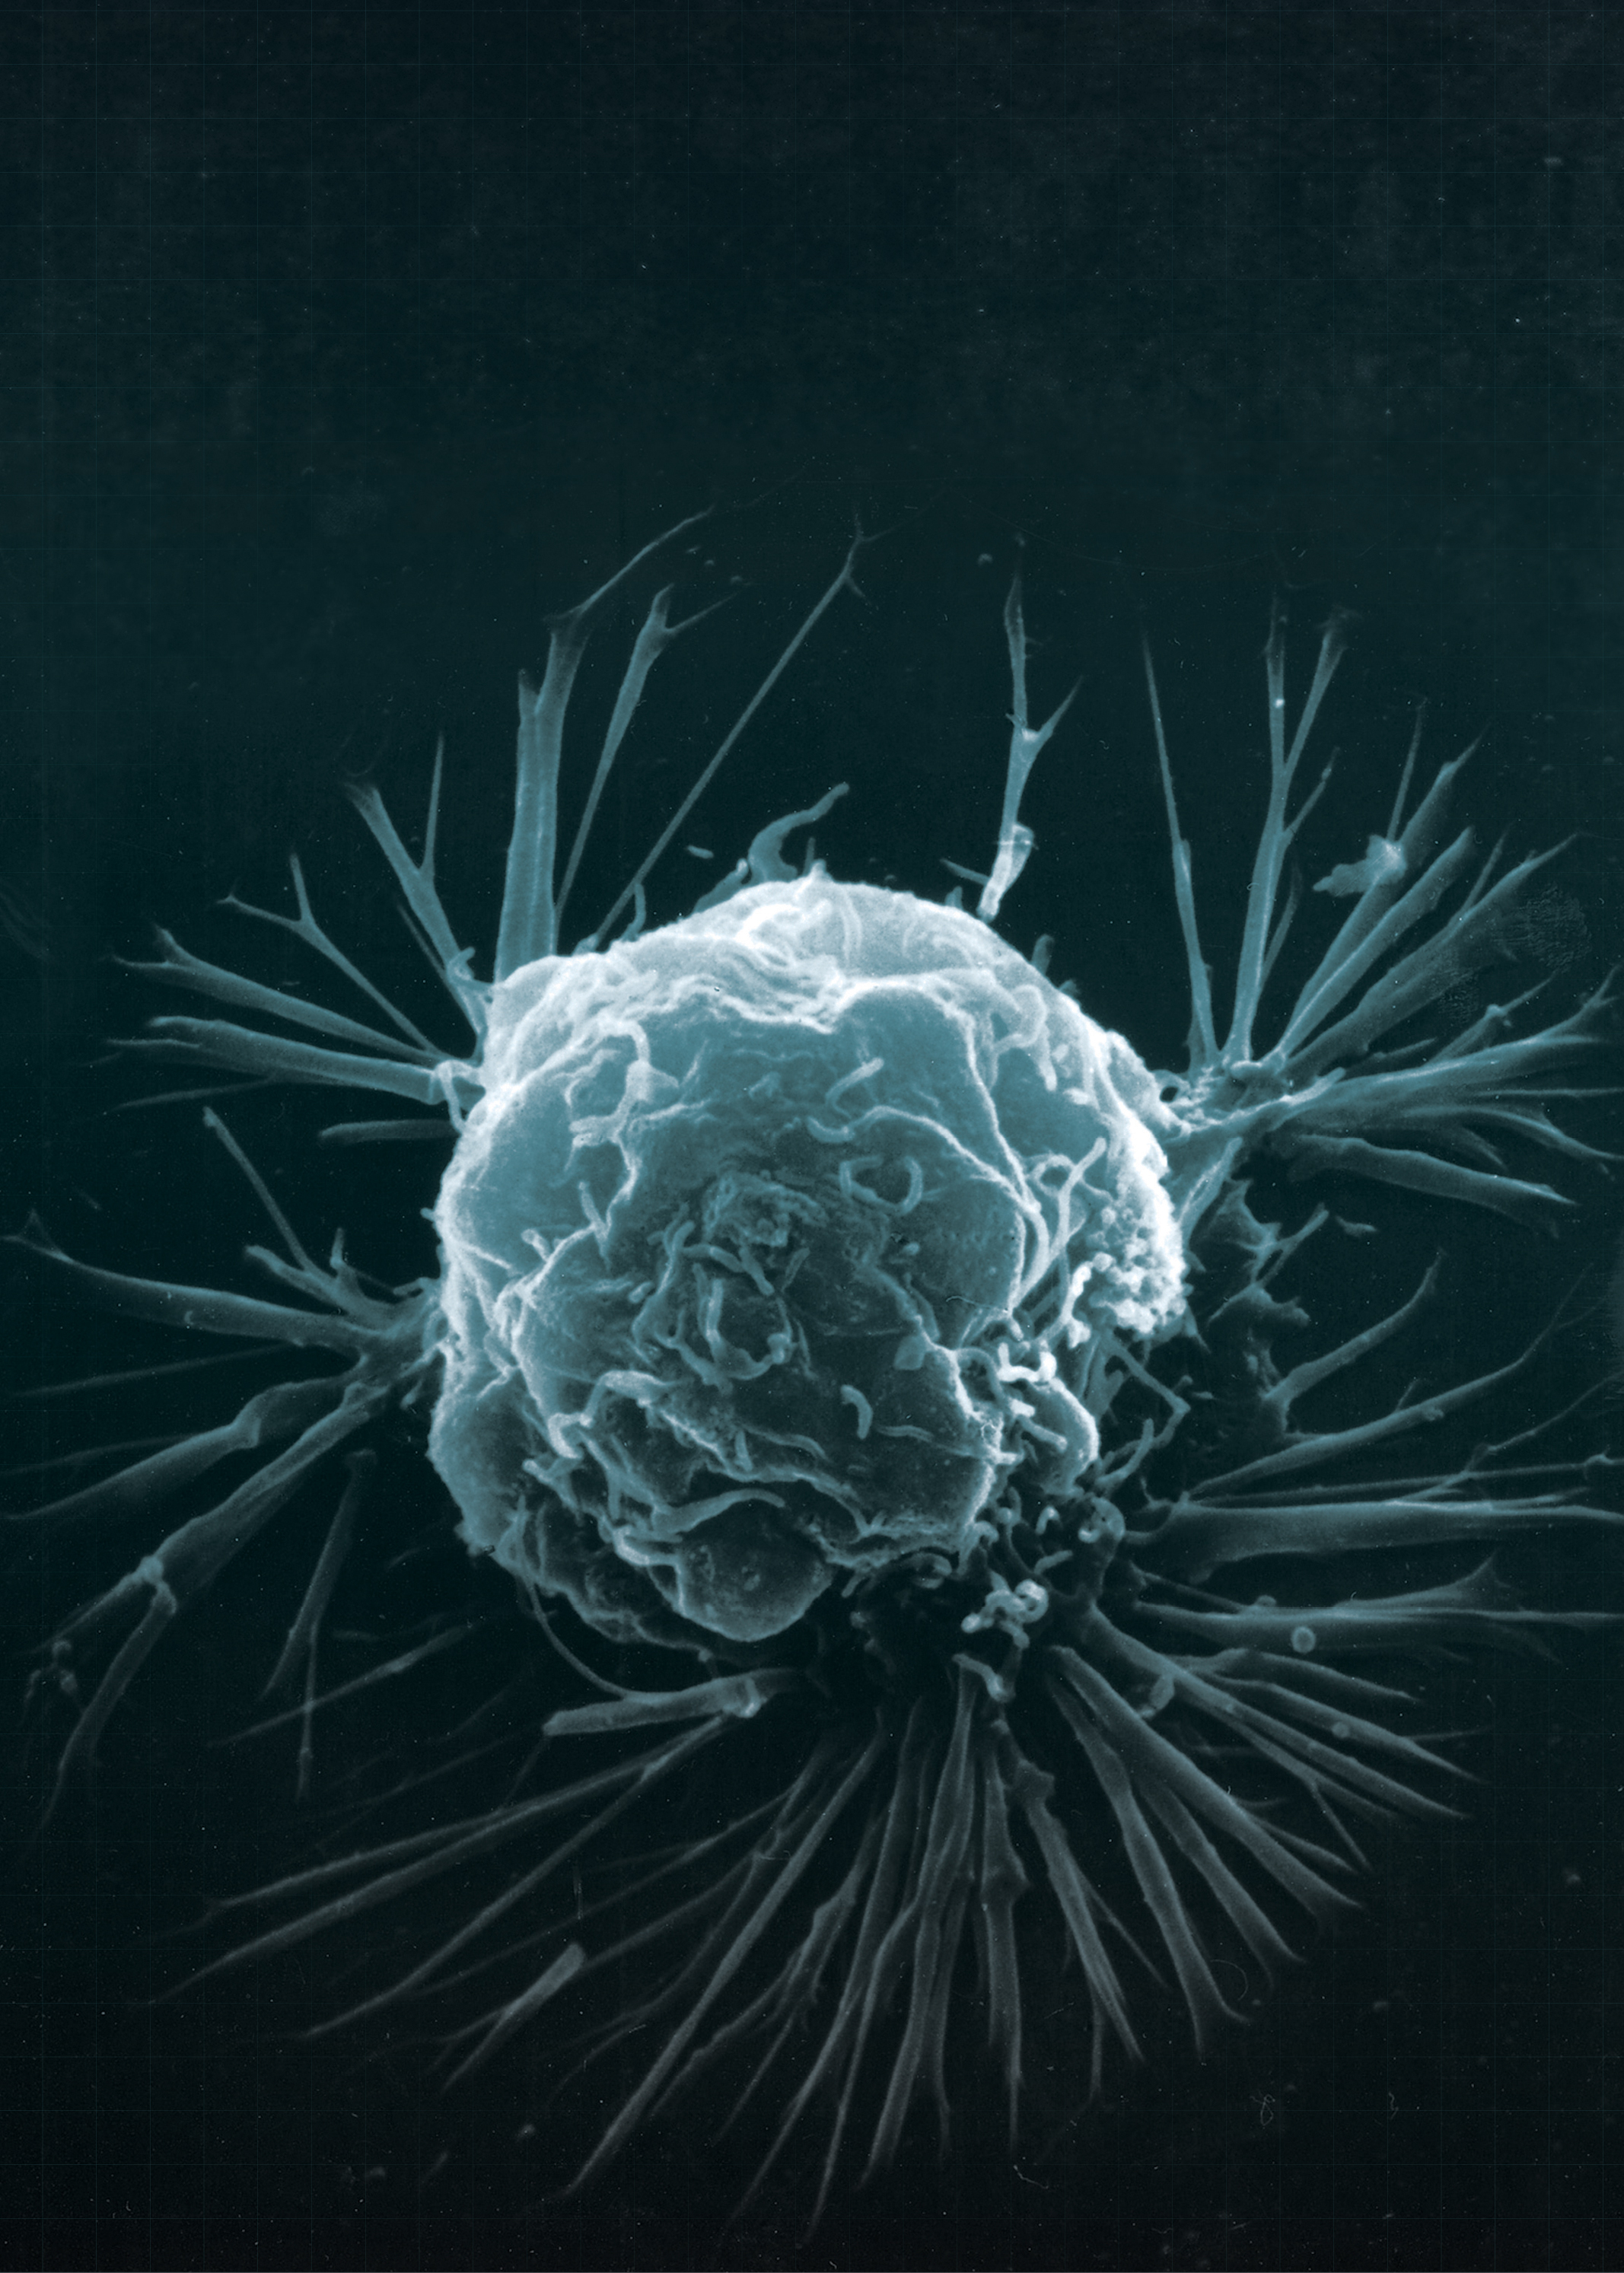 A cancer cell.